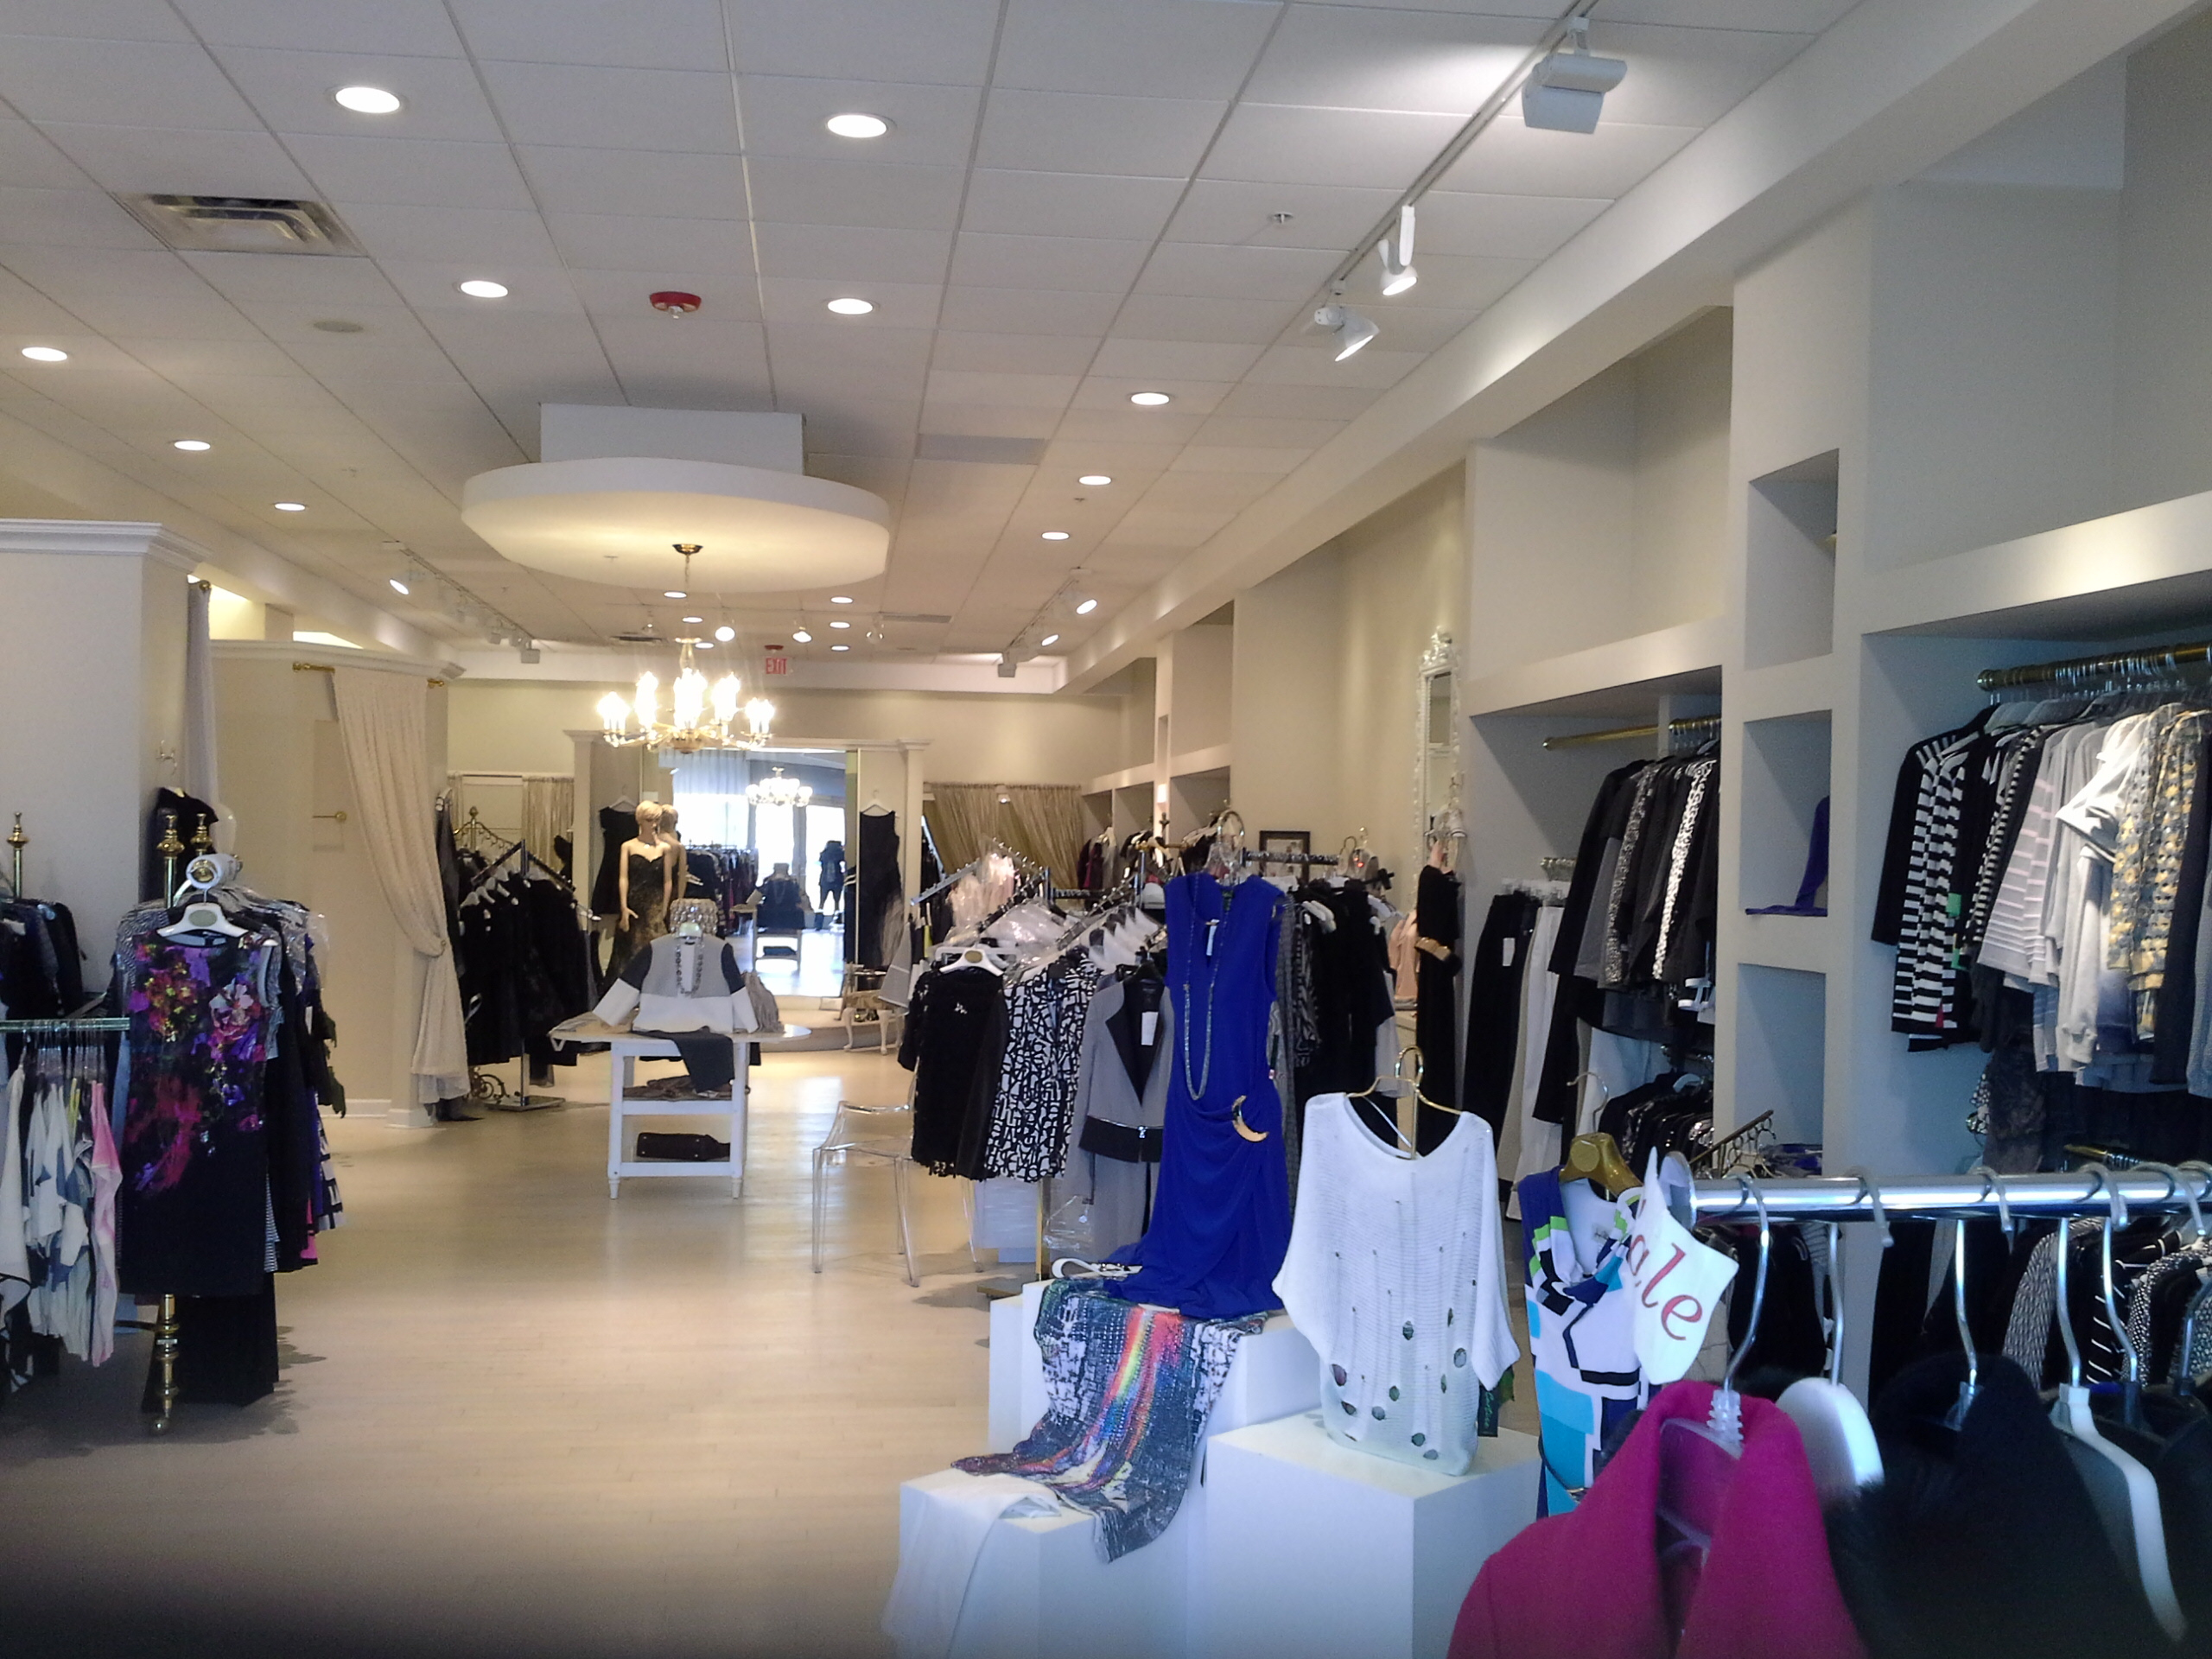 Filled to the brim with women's fashion!